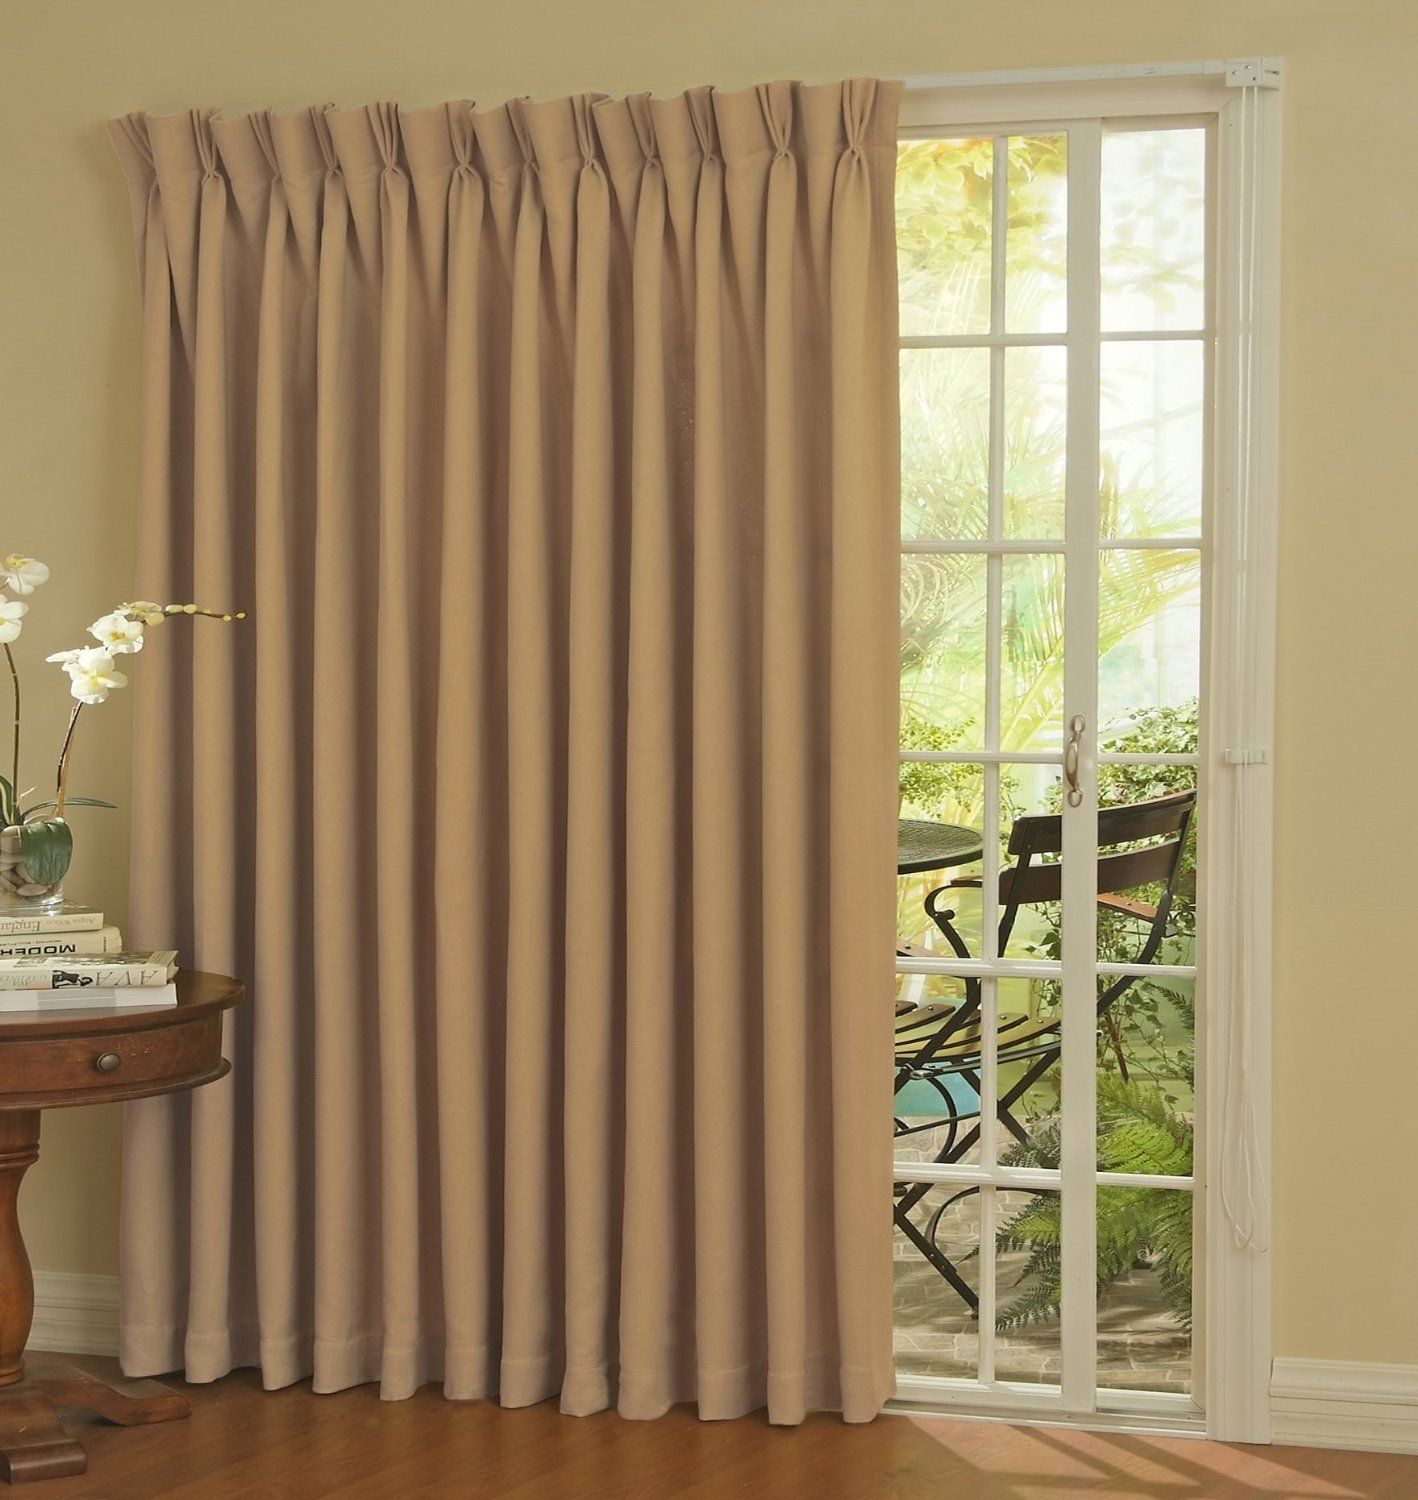 Amazon Com Eclipse Thermal Blackout Patio Door Curtain Panel 100 X 84 Wheat Window Treatments